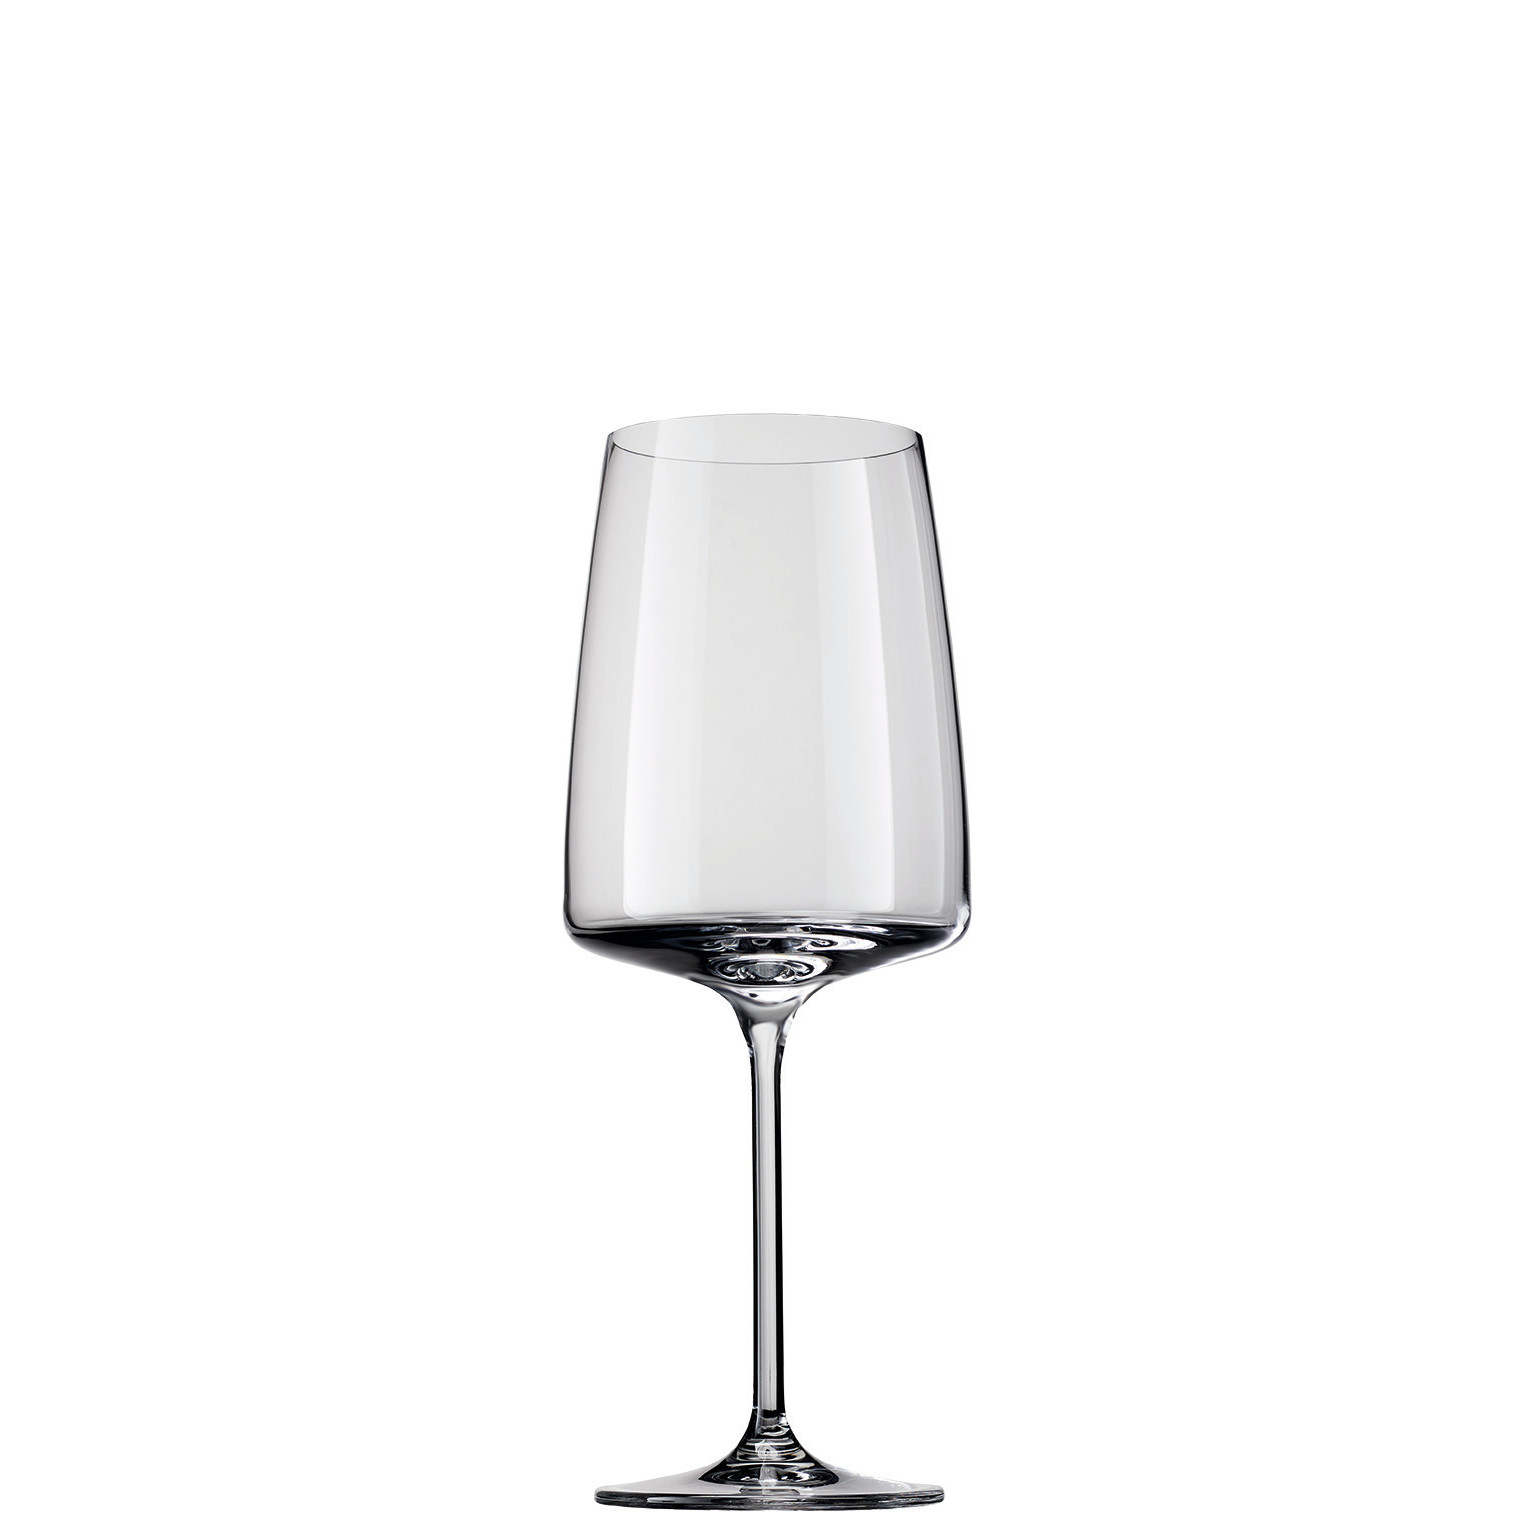 Sensa, Bordeauxglas ø 94 mm / 0,66 l 0,20 /-/